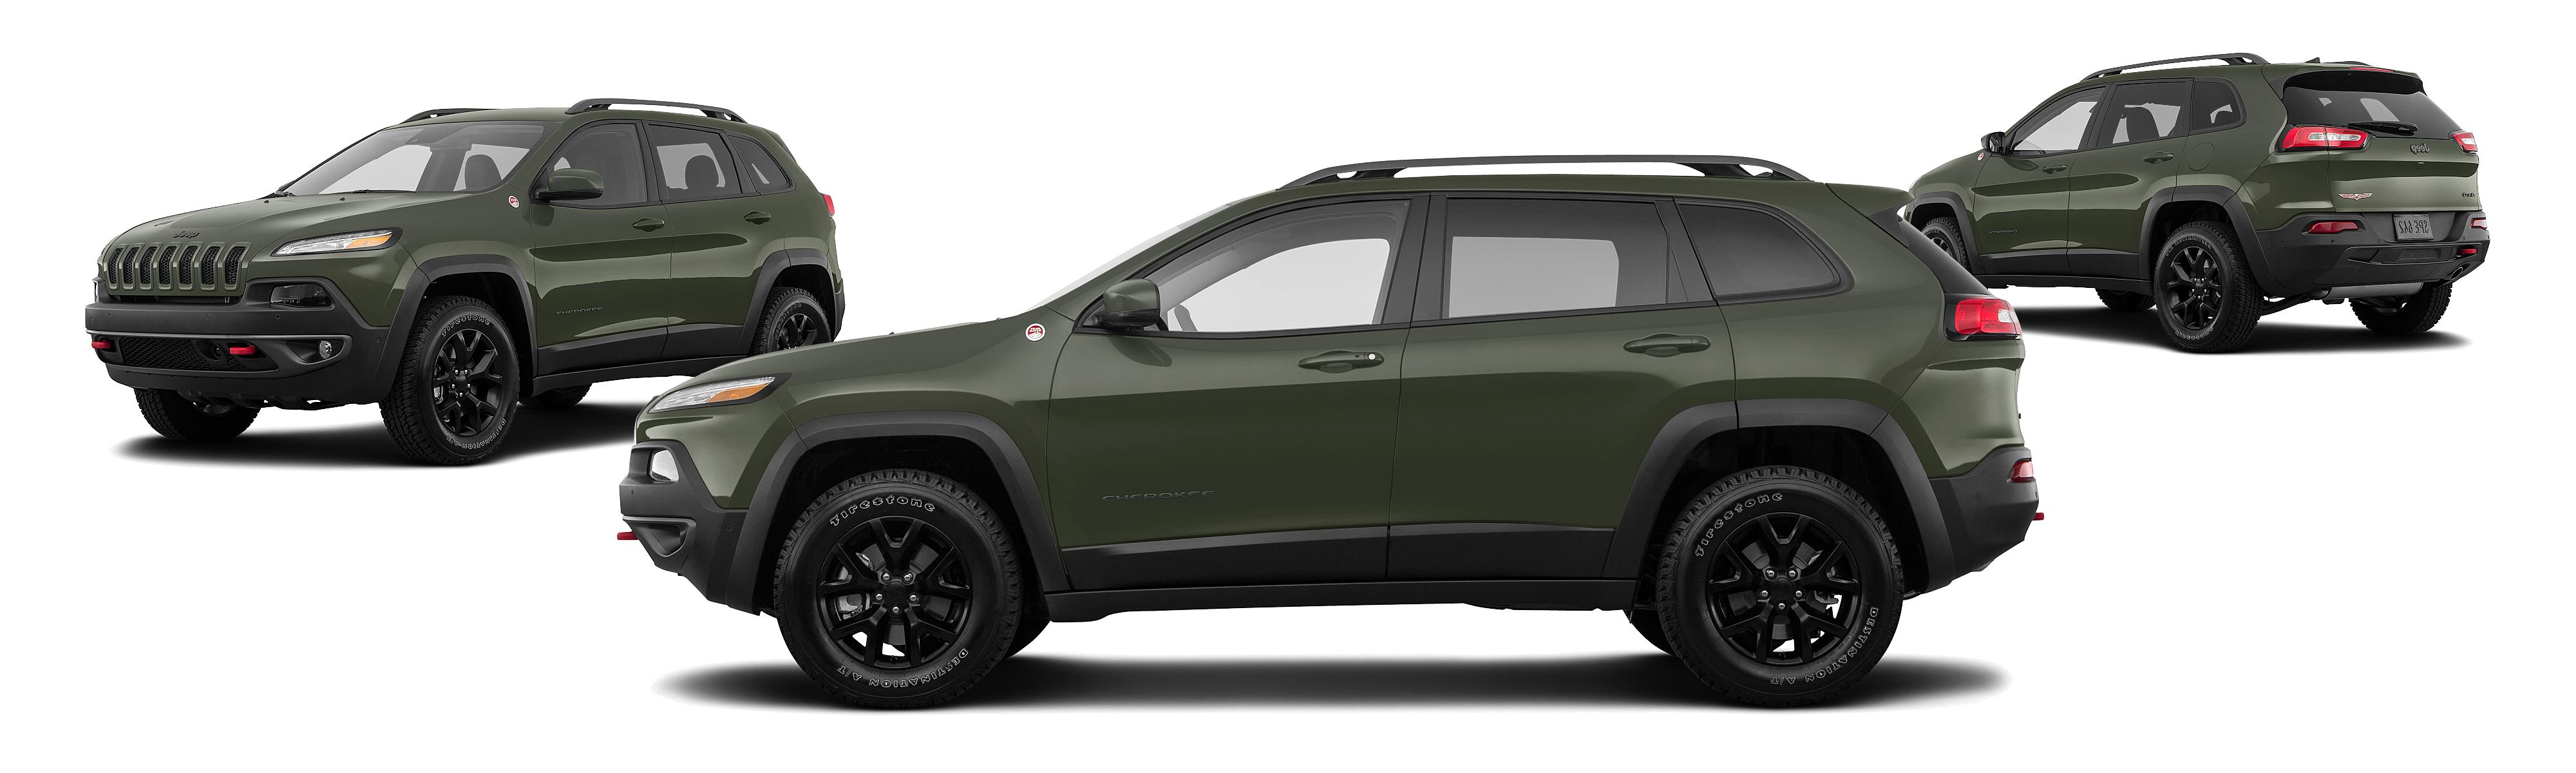 2018 Jeep Cherokee Limited 4dr SUV Research GrooveCar